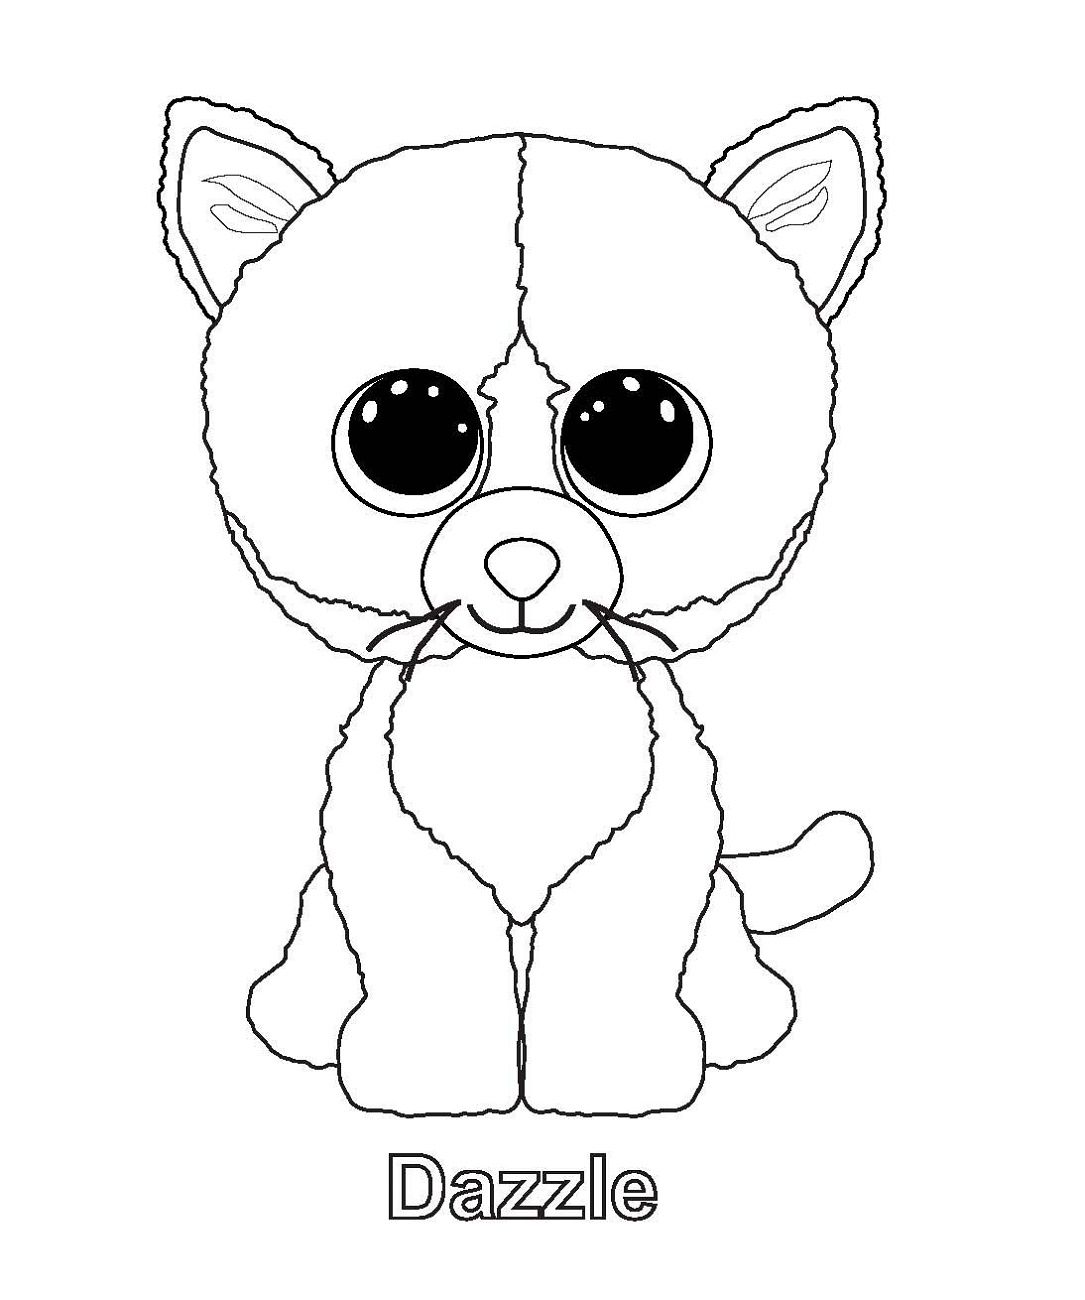 Dazzle Beanie Boo Coloring Pages